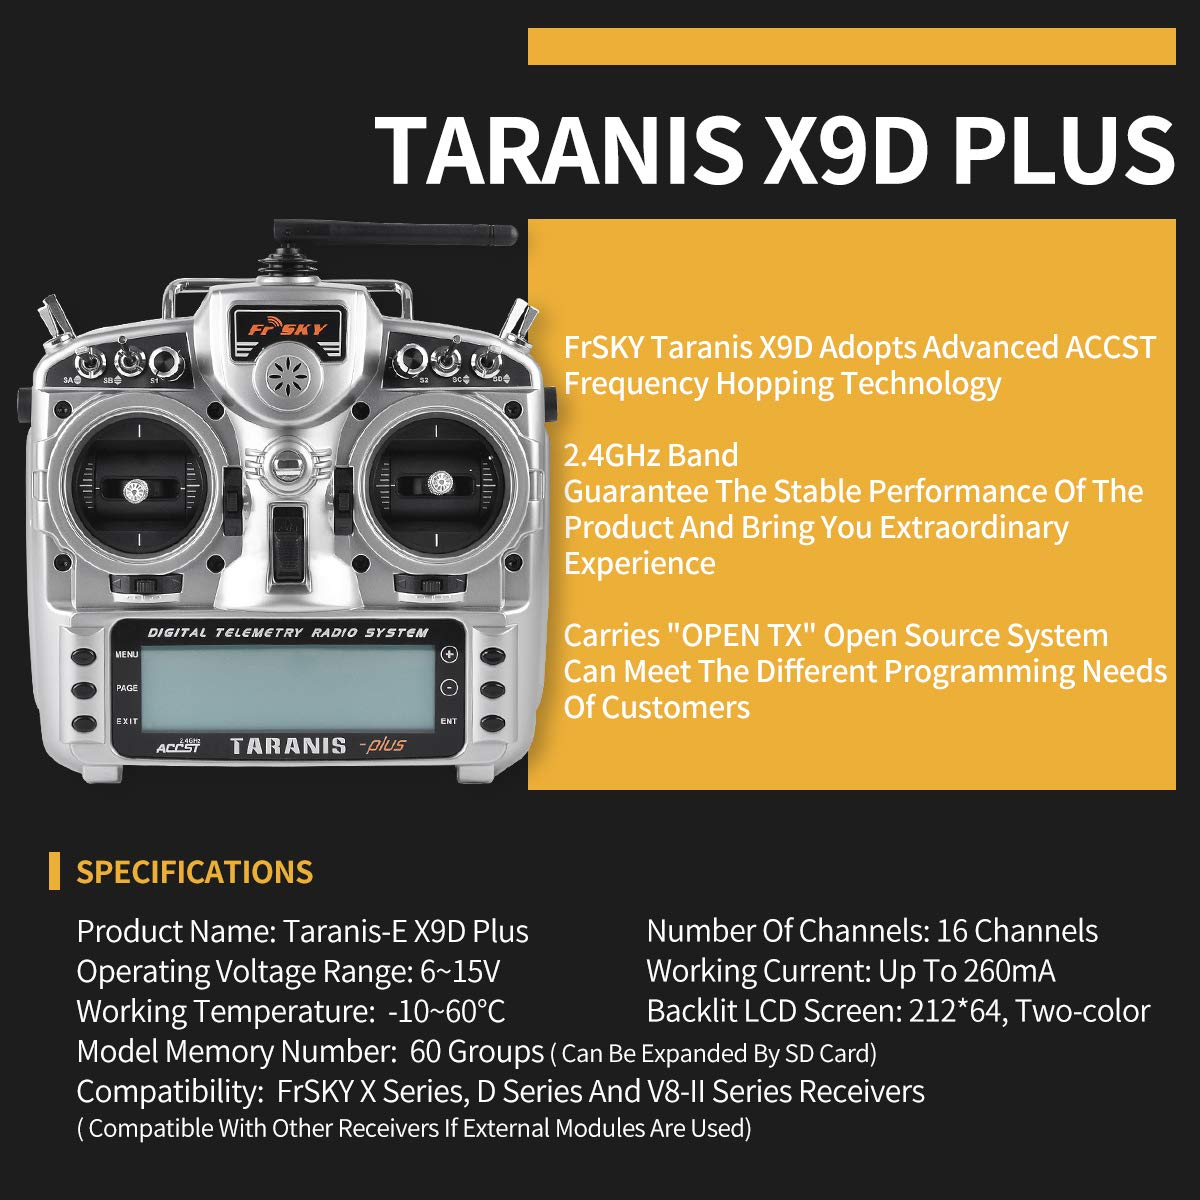 LITEBEE Frsky Taranis X9D Plus Transmitter 16CH 2 4ghz ACCST RC Transmitter  (RSSI Alarms) Compatible Frsky RC Receiver for FPV Racing RC Drone